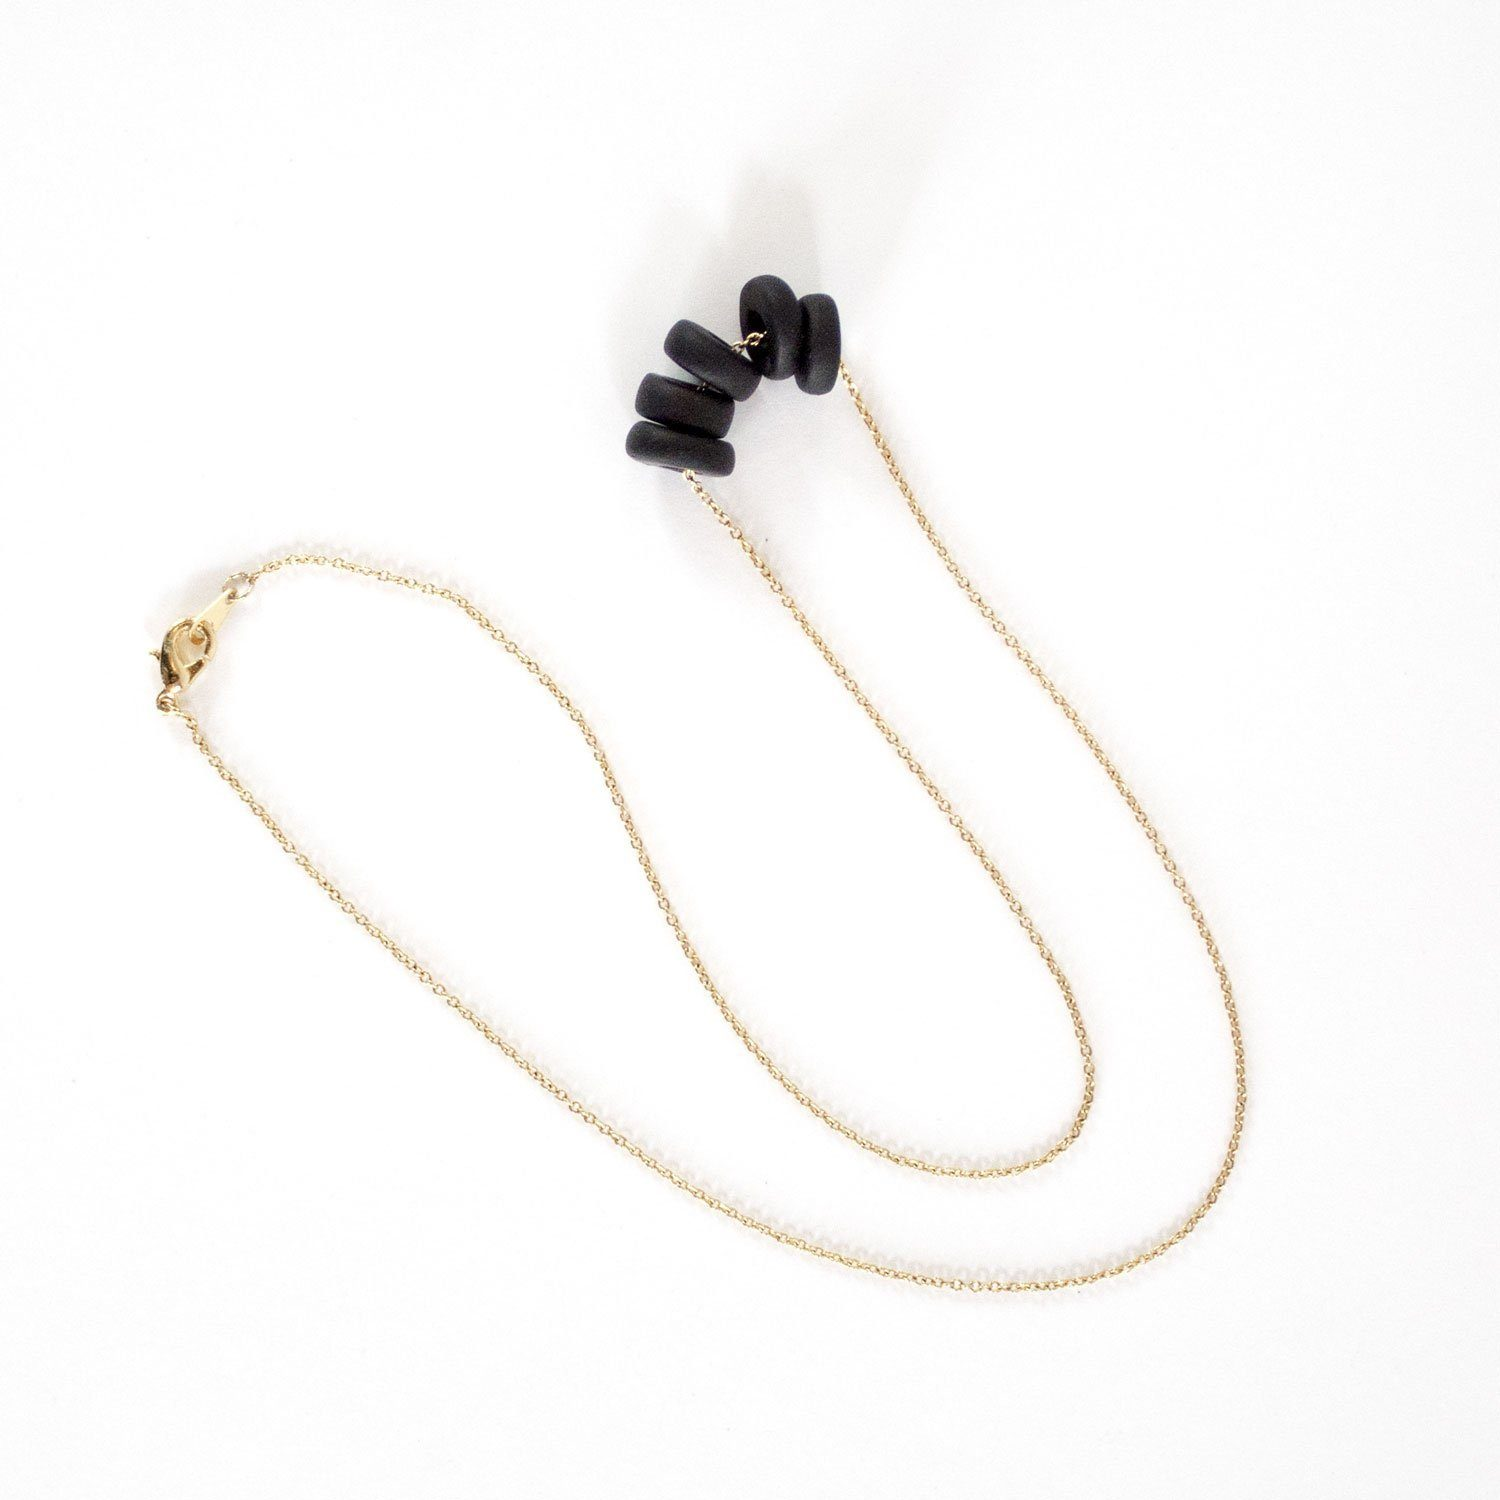 Gold Necklace - Black Disk Beads - Necklaces - 5mm Paper - Naiise